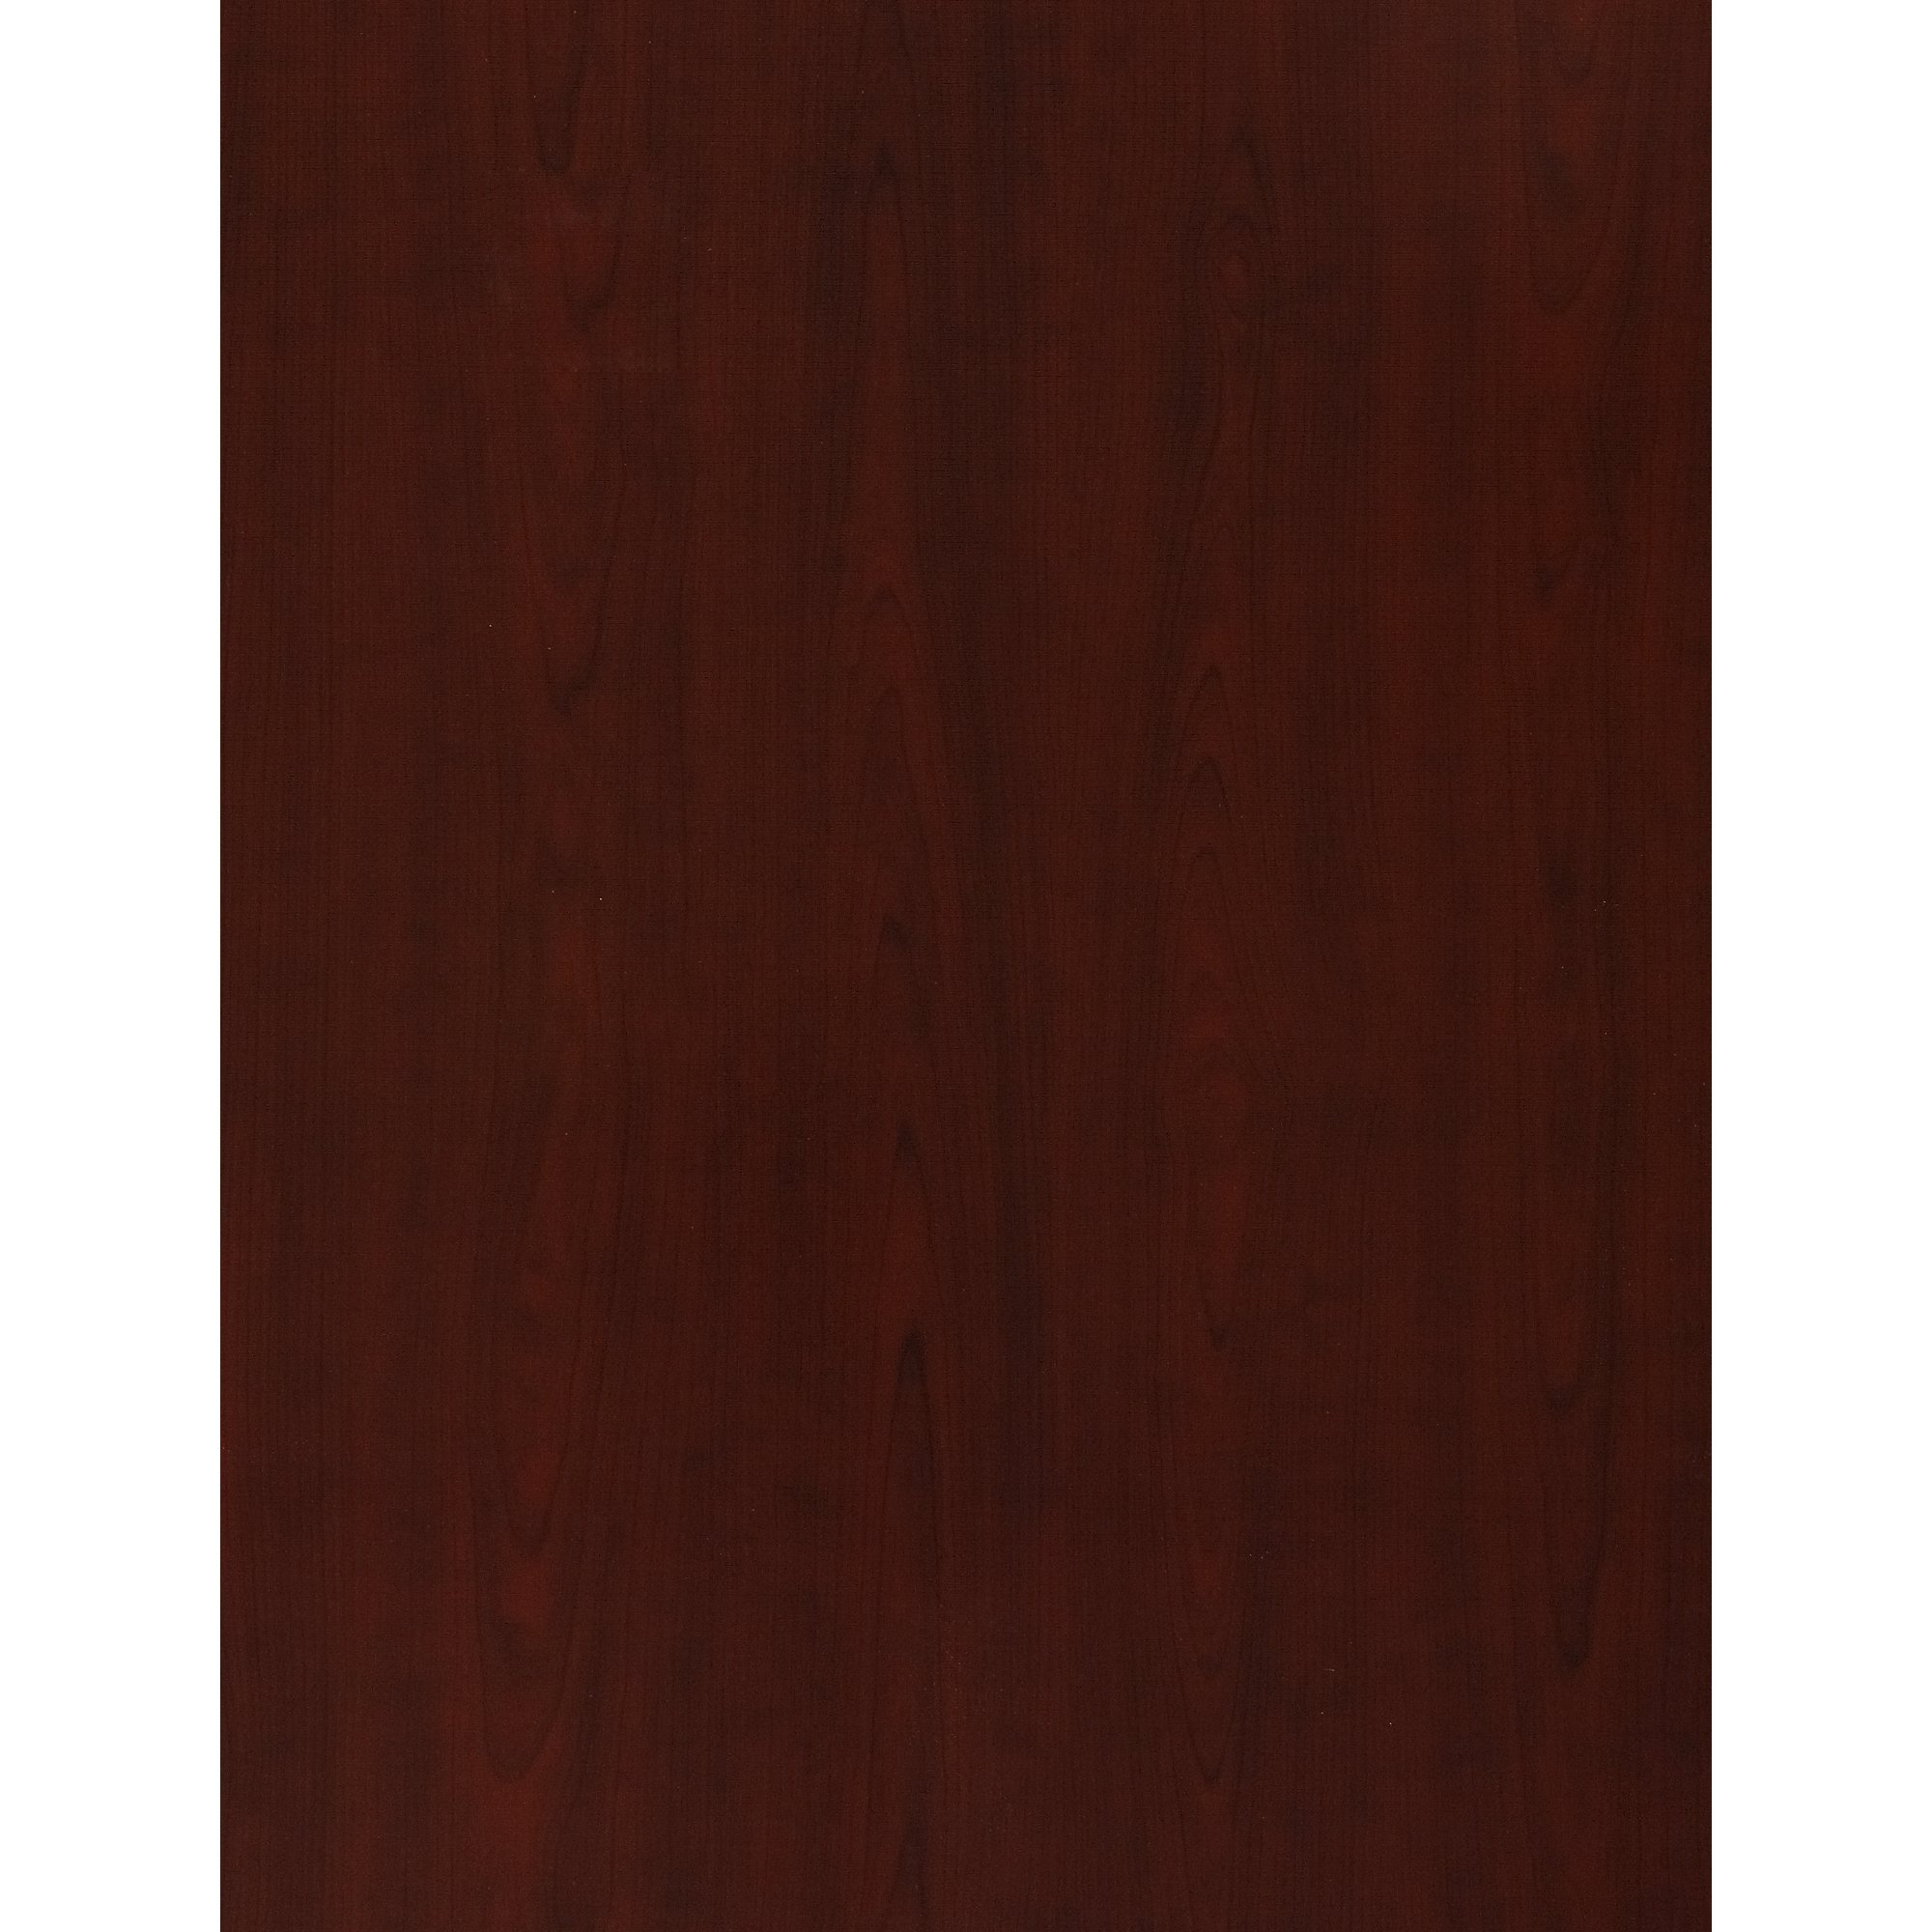 Bush Low Hutch, 60-Inch by 12-Inch by 27-5/8-Inch, Harvest Cherry by Bush (Image #6)